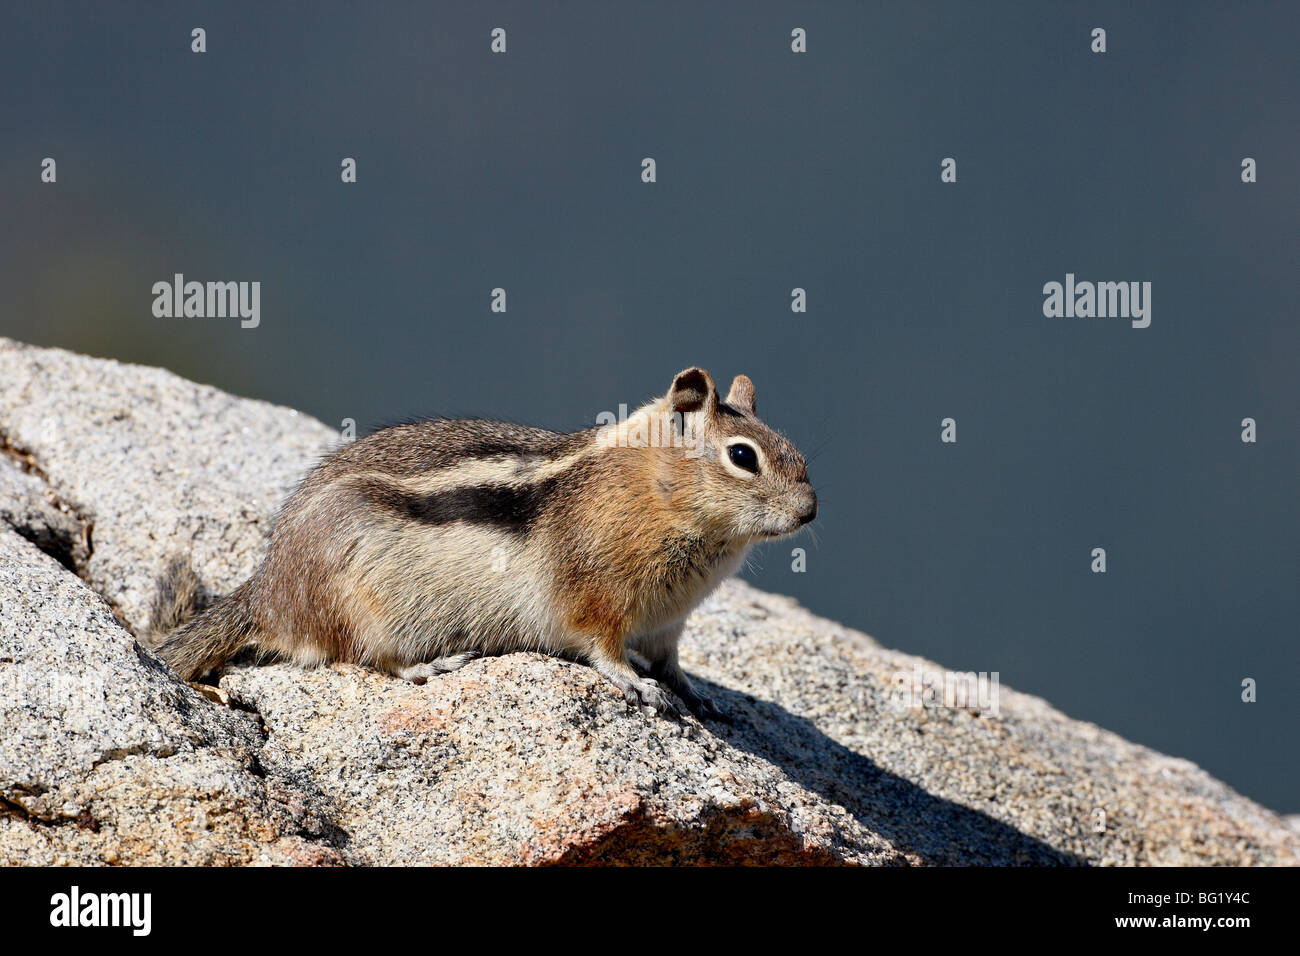 Golden-mantled squirrel (Citellus lateralis), Rocky Mountain National Park, Colorado, United States of America, - Stock Image